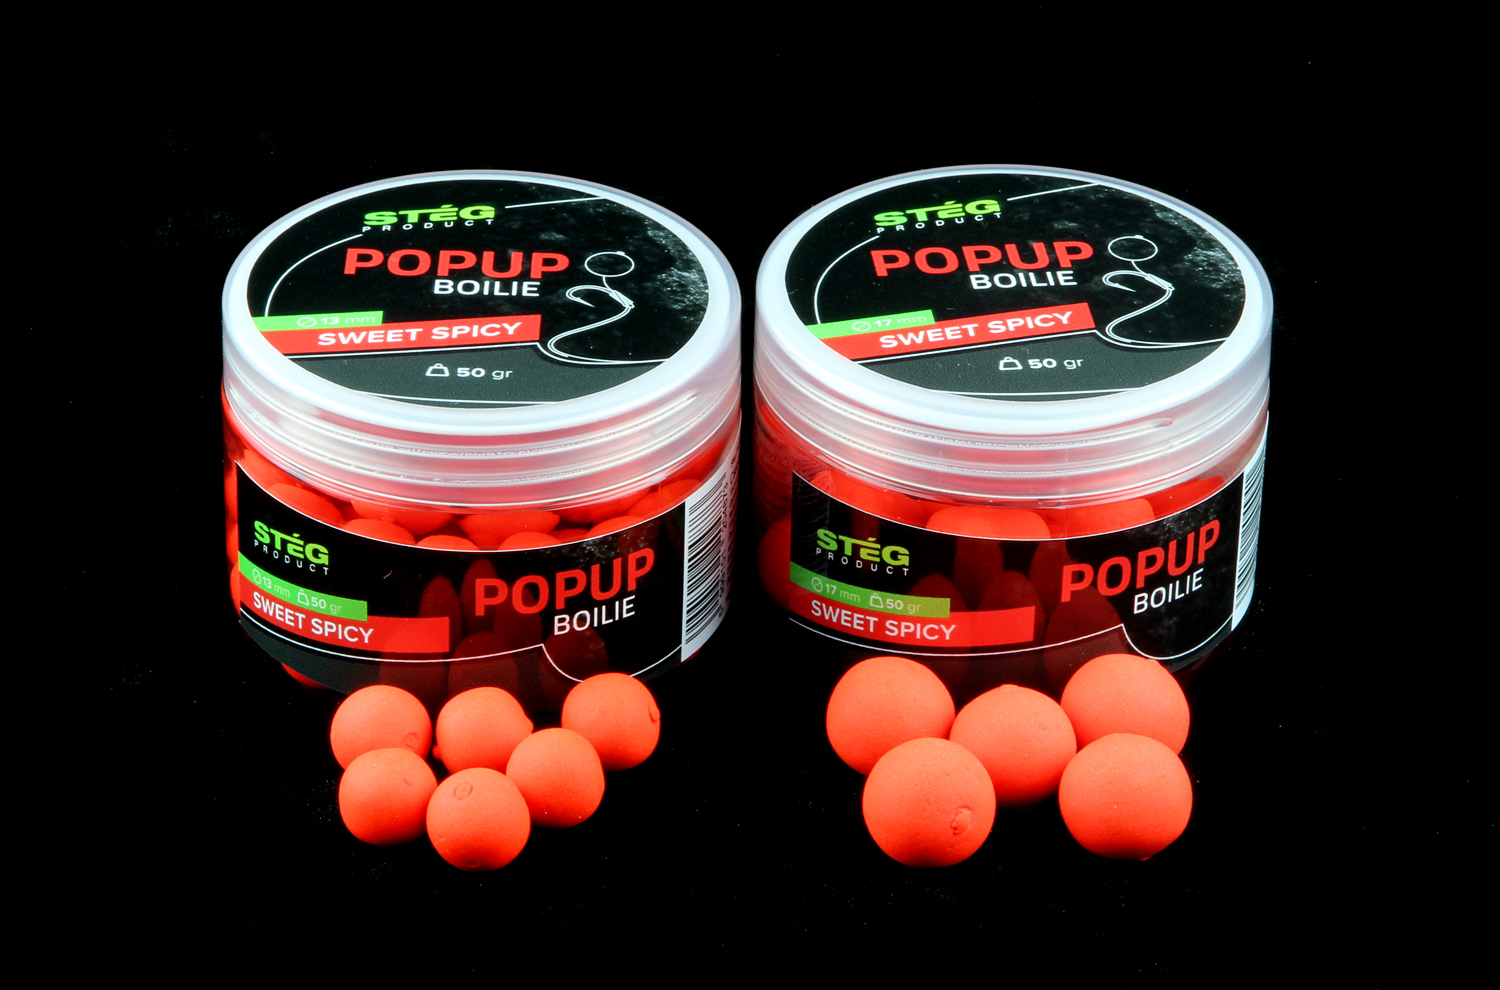 STEG FLUO POP UP BOILIE 13MM - SWEET SPICY